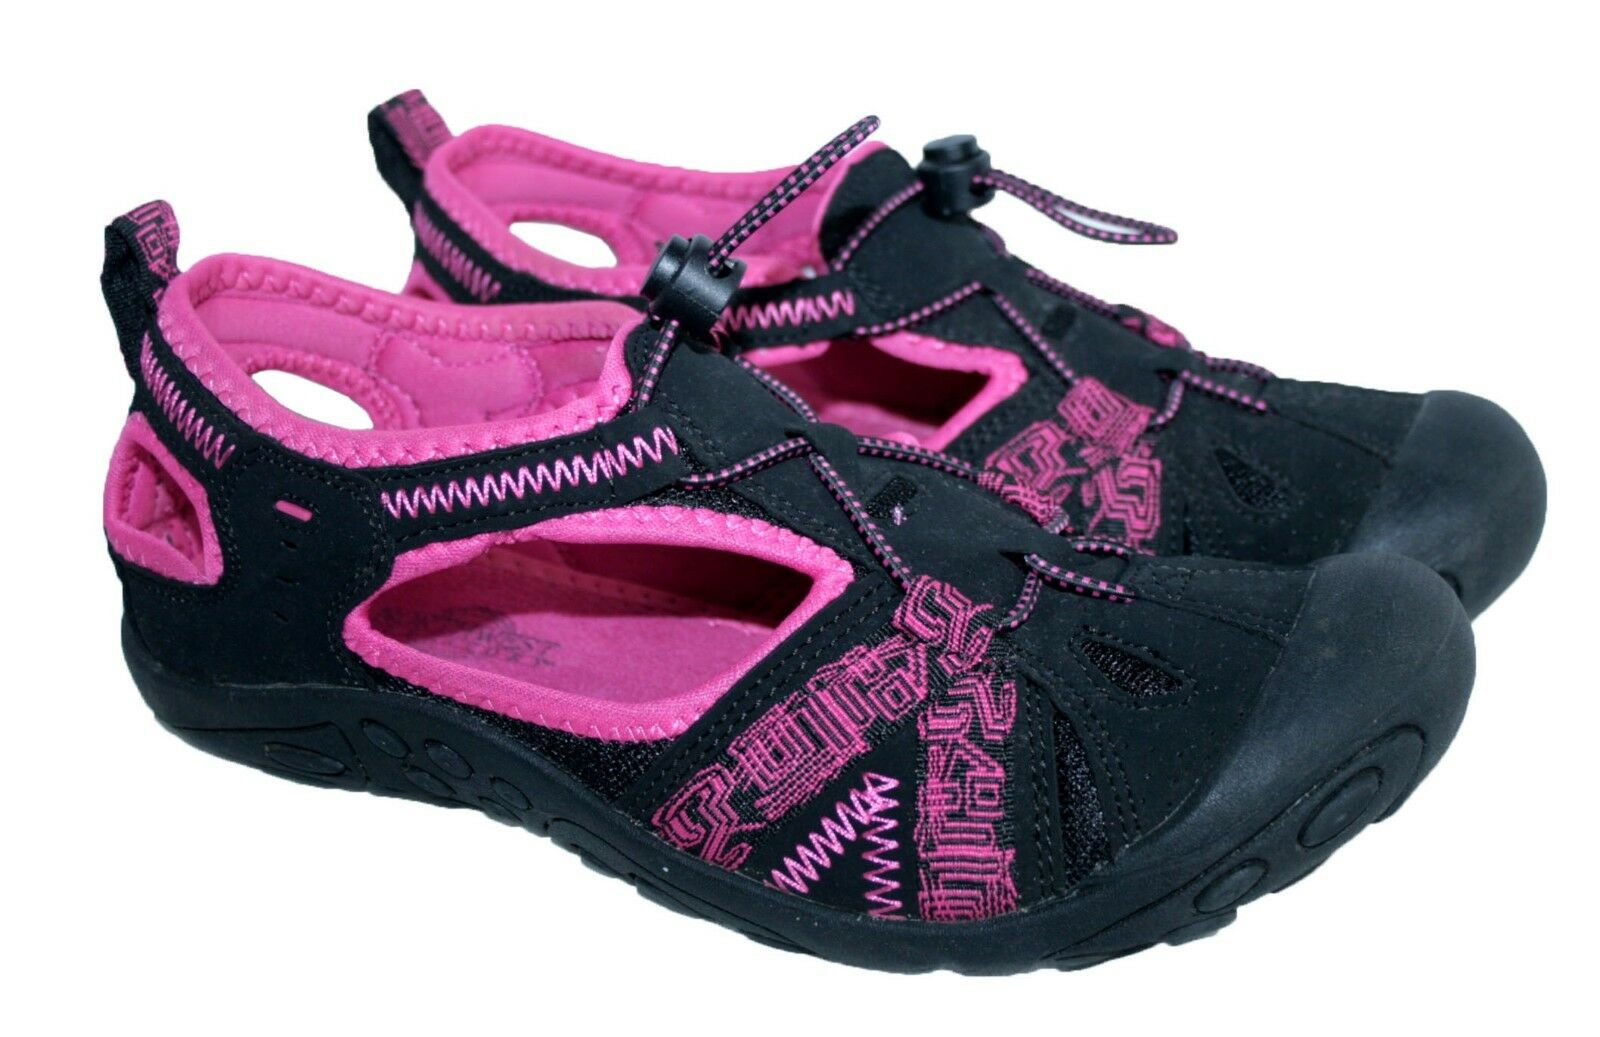 LADIES ACTIVE, ADVENTURE TOGGLE SIZE SUMMER SPORTS SHOE BLACK PINK SIZE TOGGLE 5 7ac96b